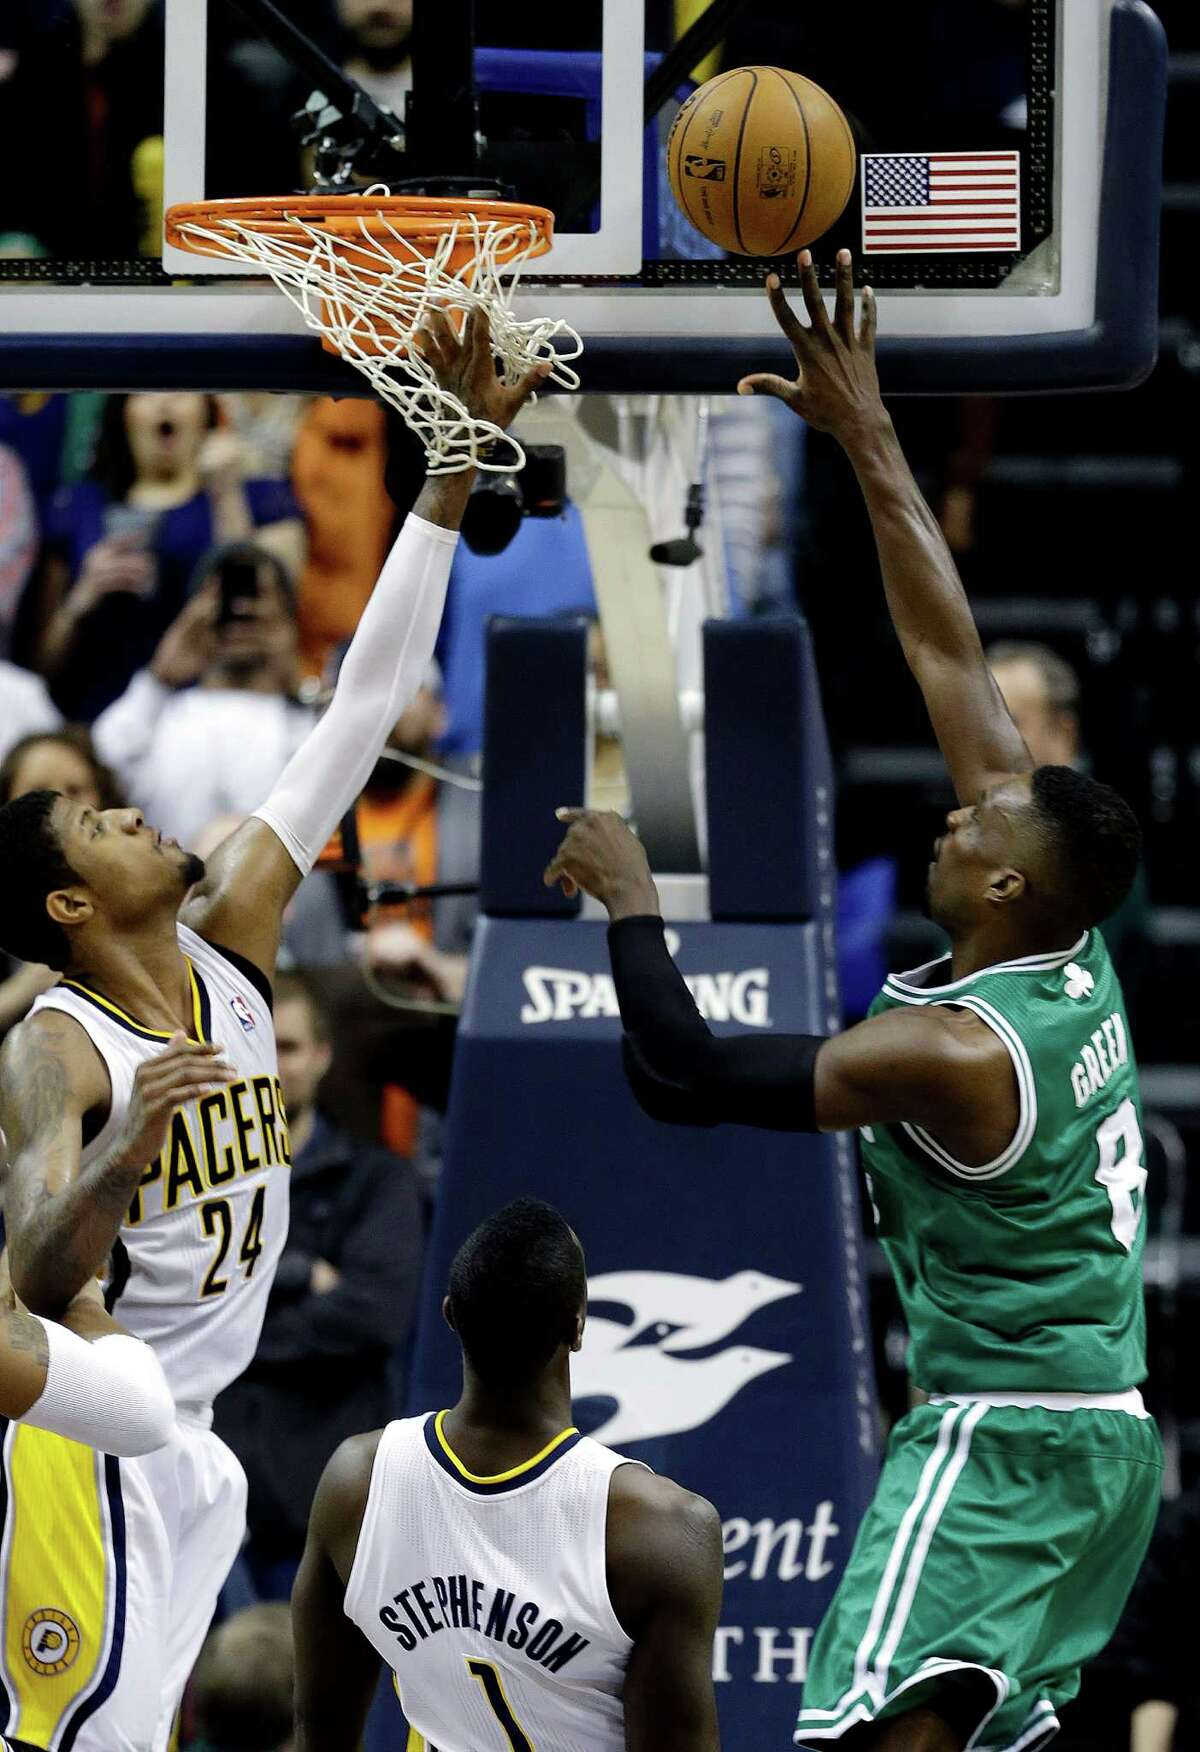 Boston's Jeff Green, right, makes the last-second, game-winning basket against Indiana on Wednesday.